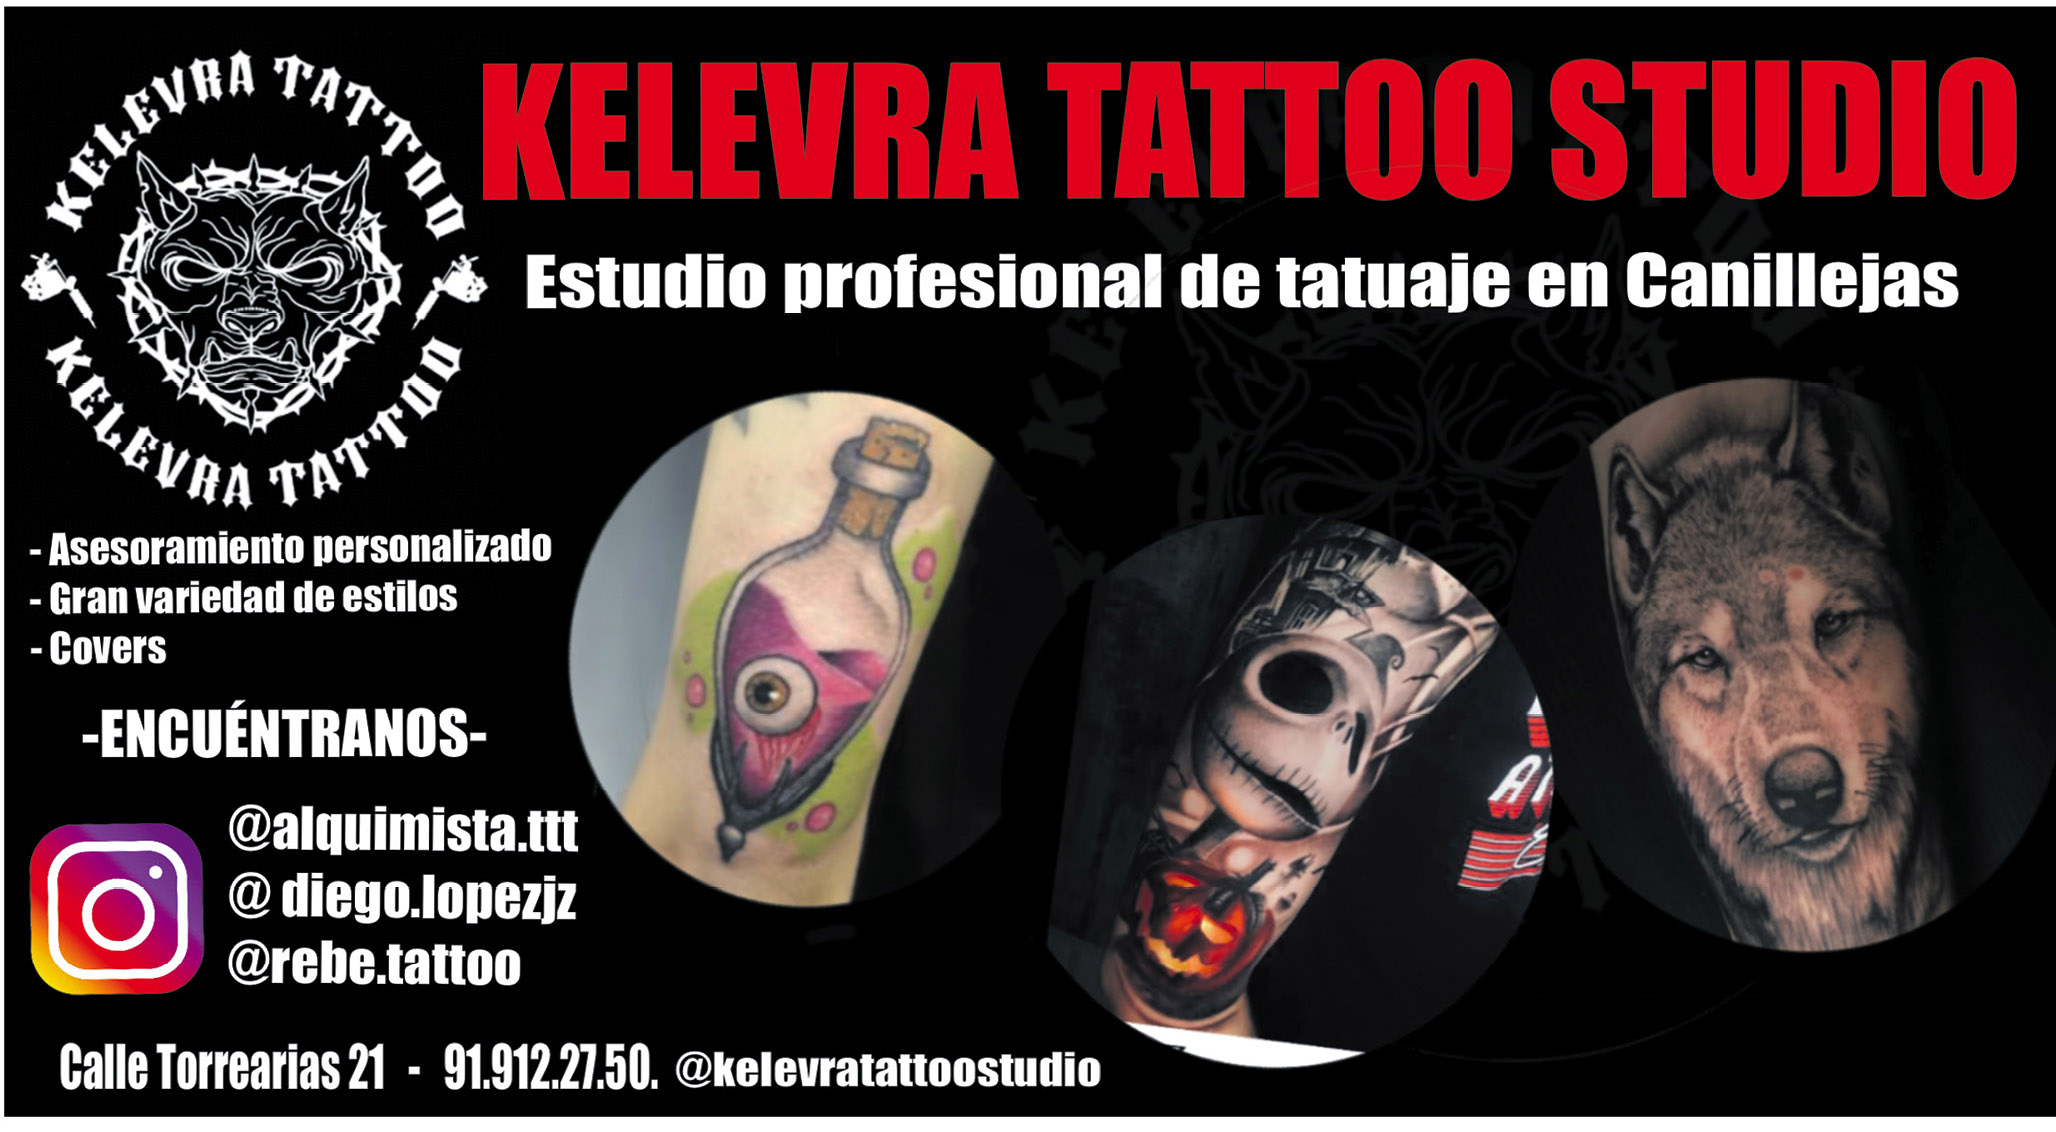 Kelevra Tattoo